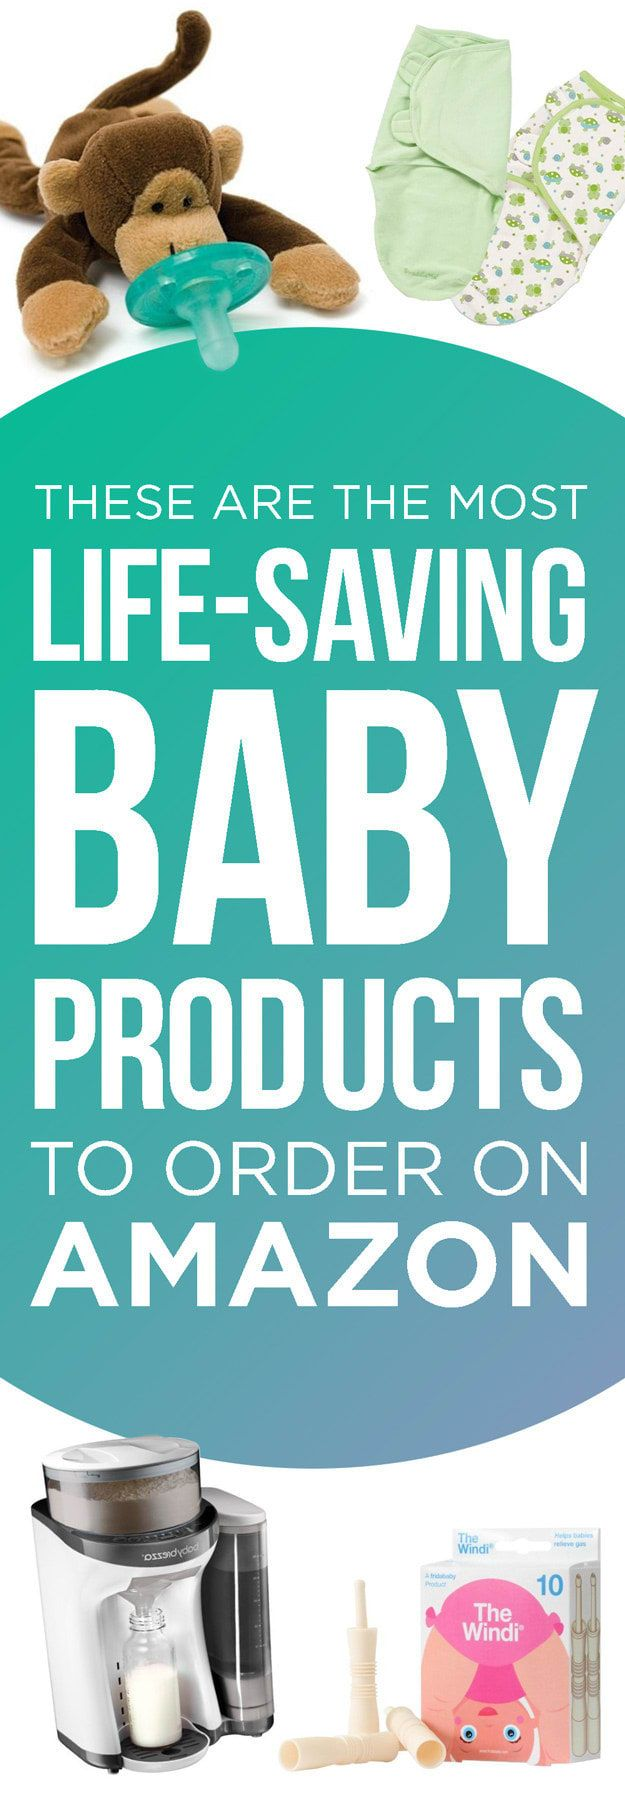 We hope you love the products we recommend! Just so you know, BuzzFeed may collect a small share of sales from the links on this page.